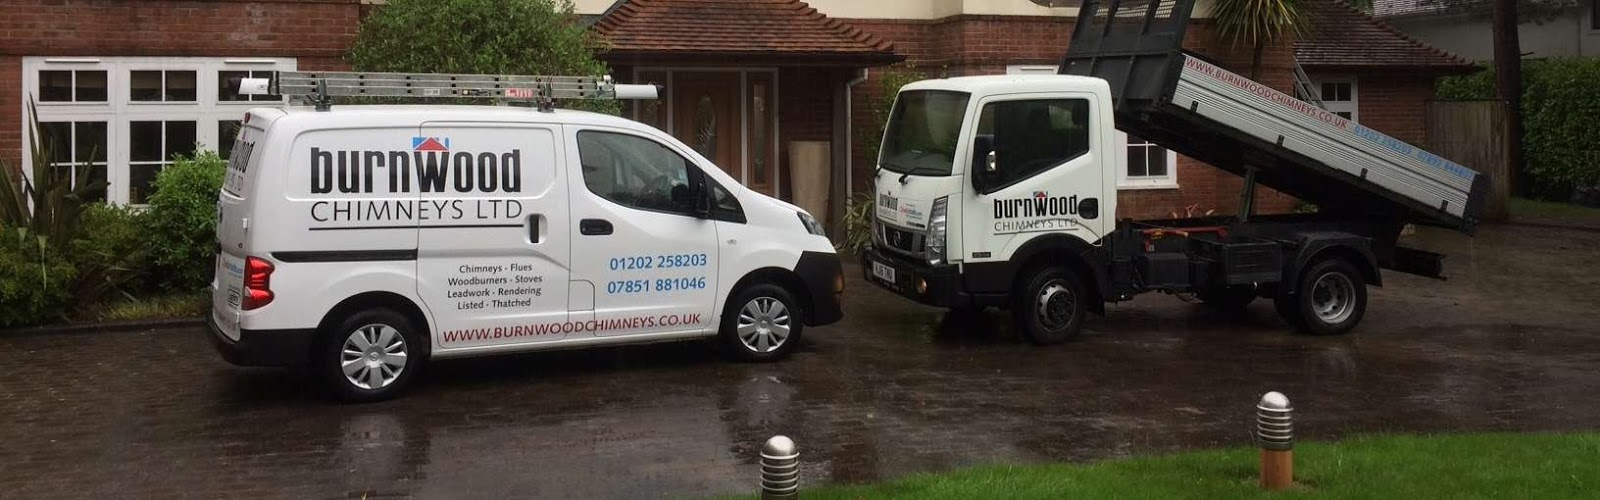 Burnwood Chimneys Ltd Vehicles